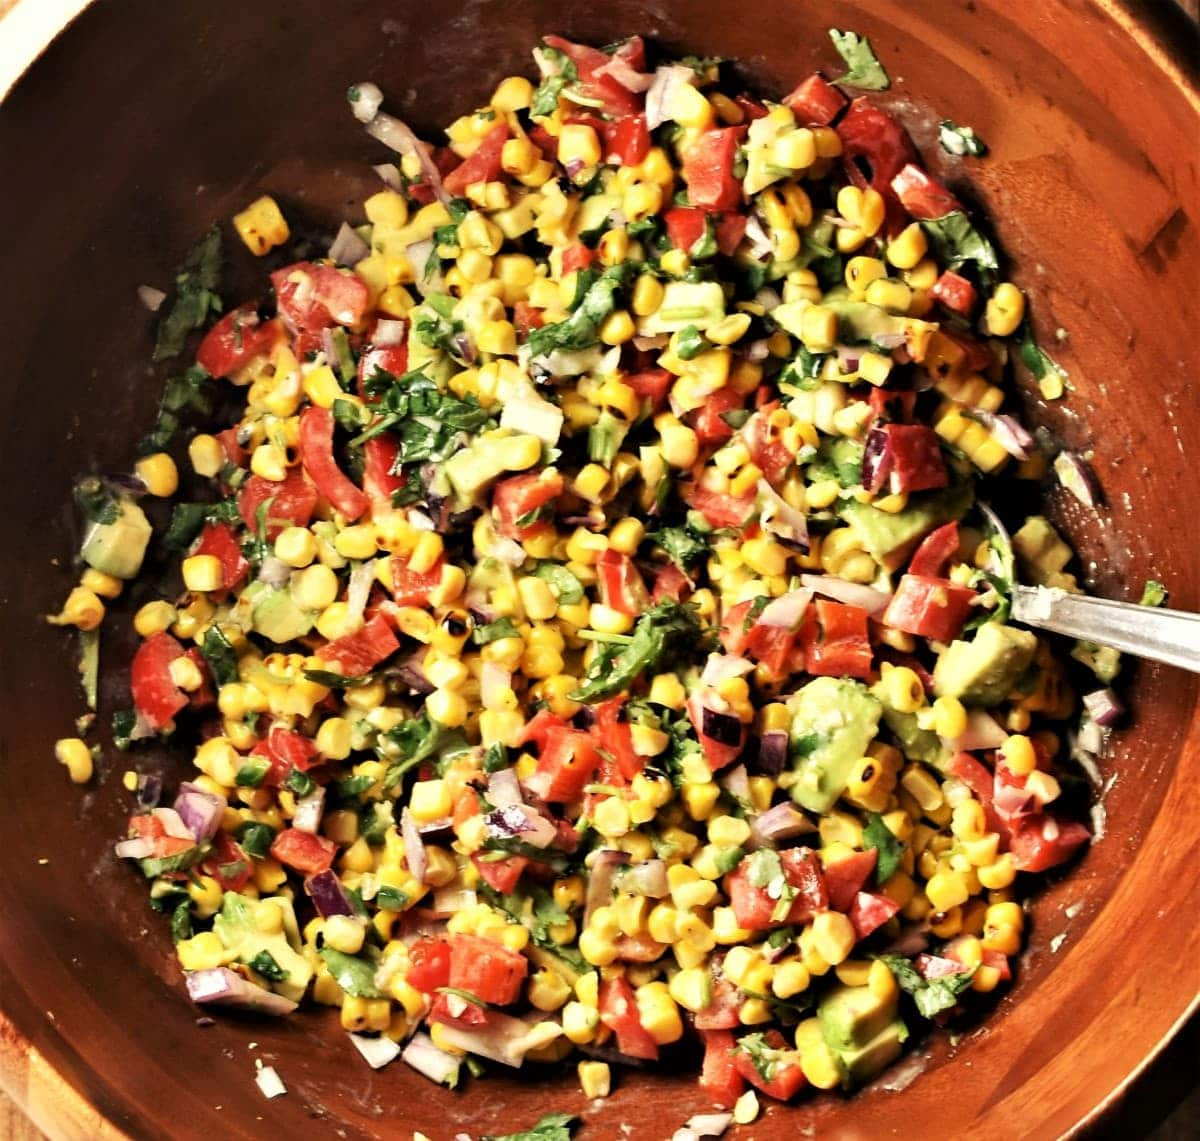 Corn and vegetable salsa in large wooden bowl with spoon.